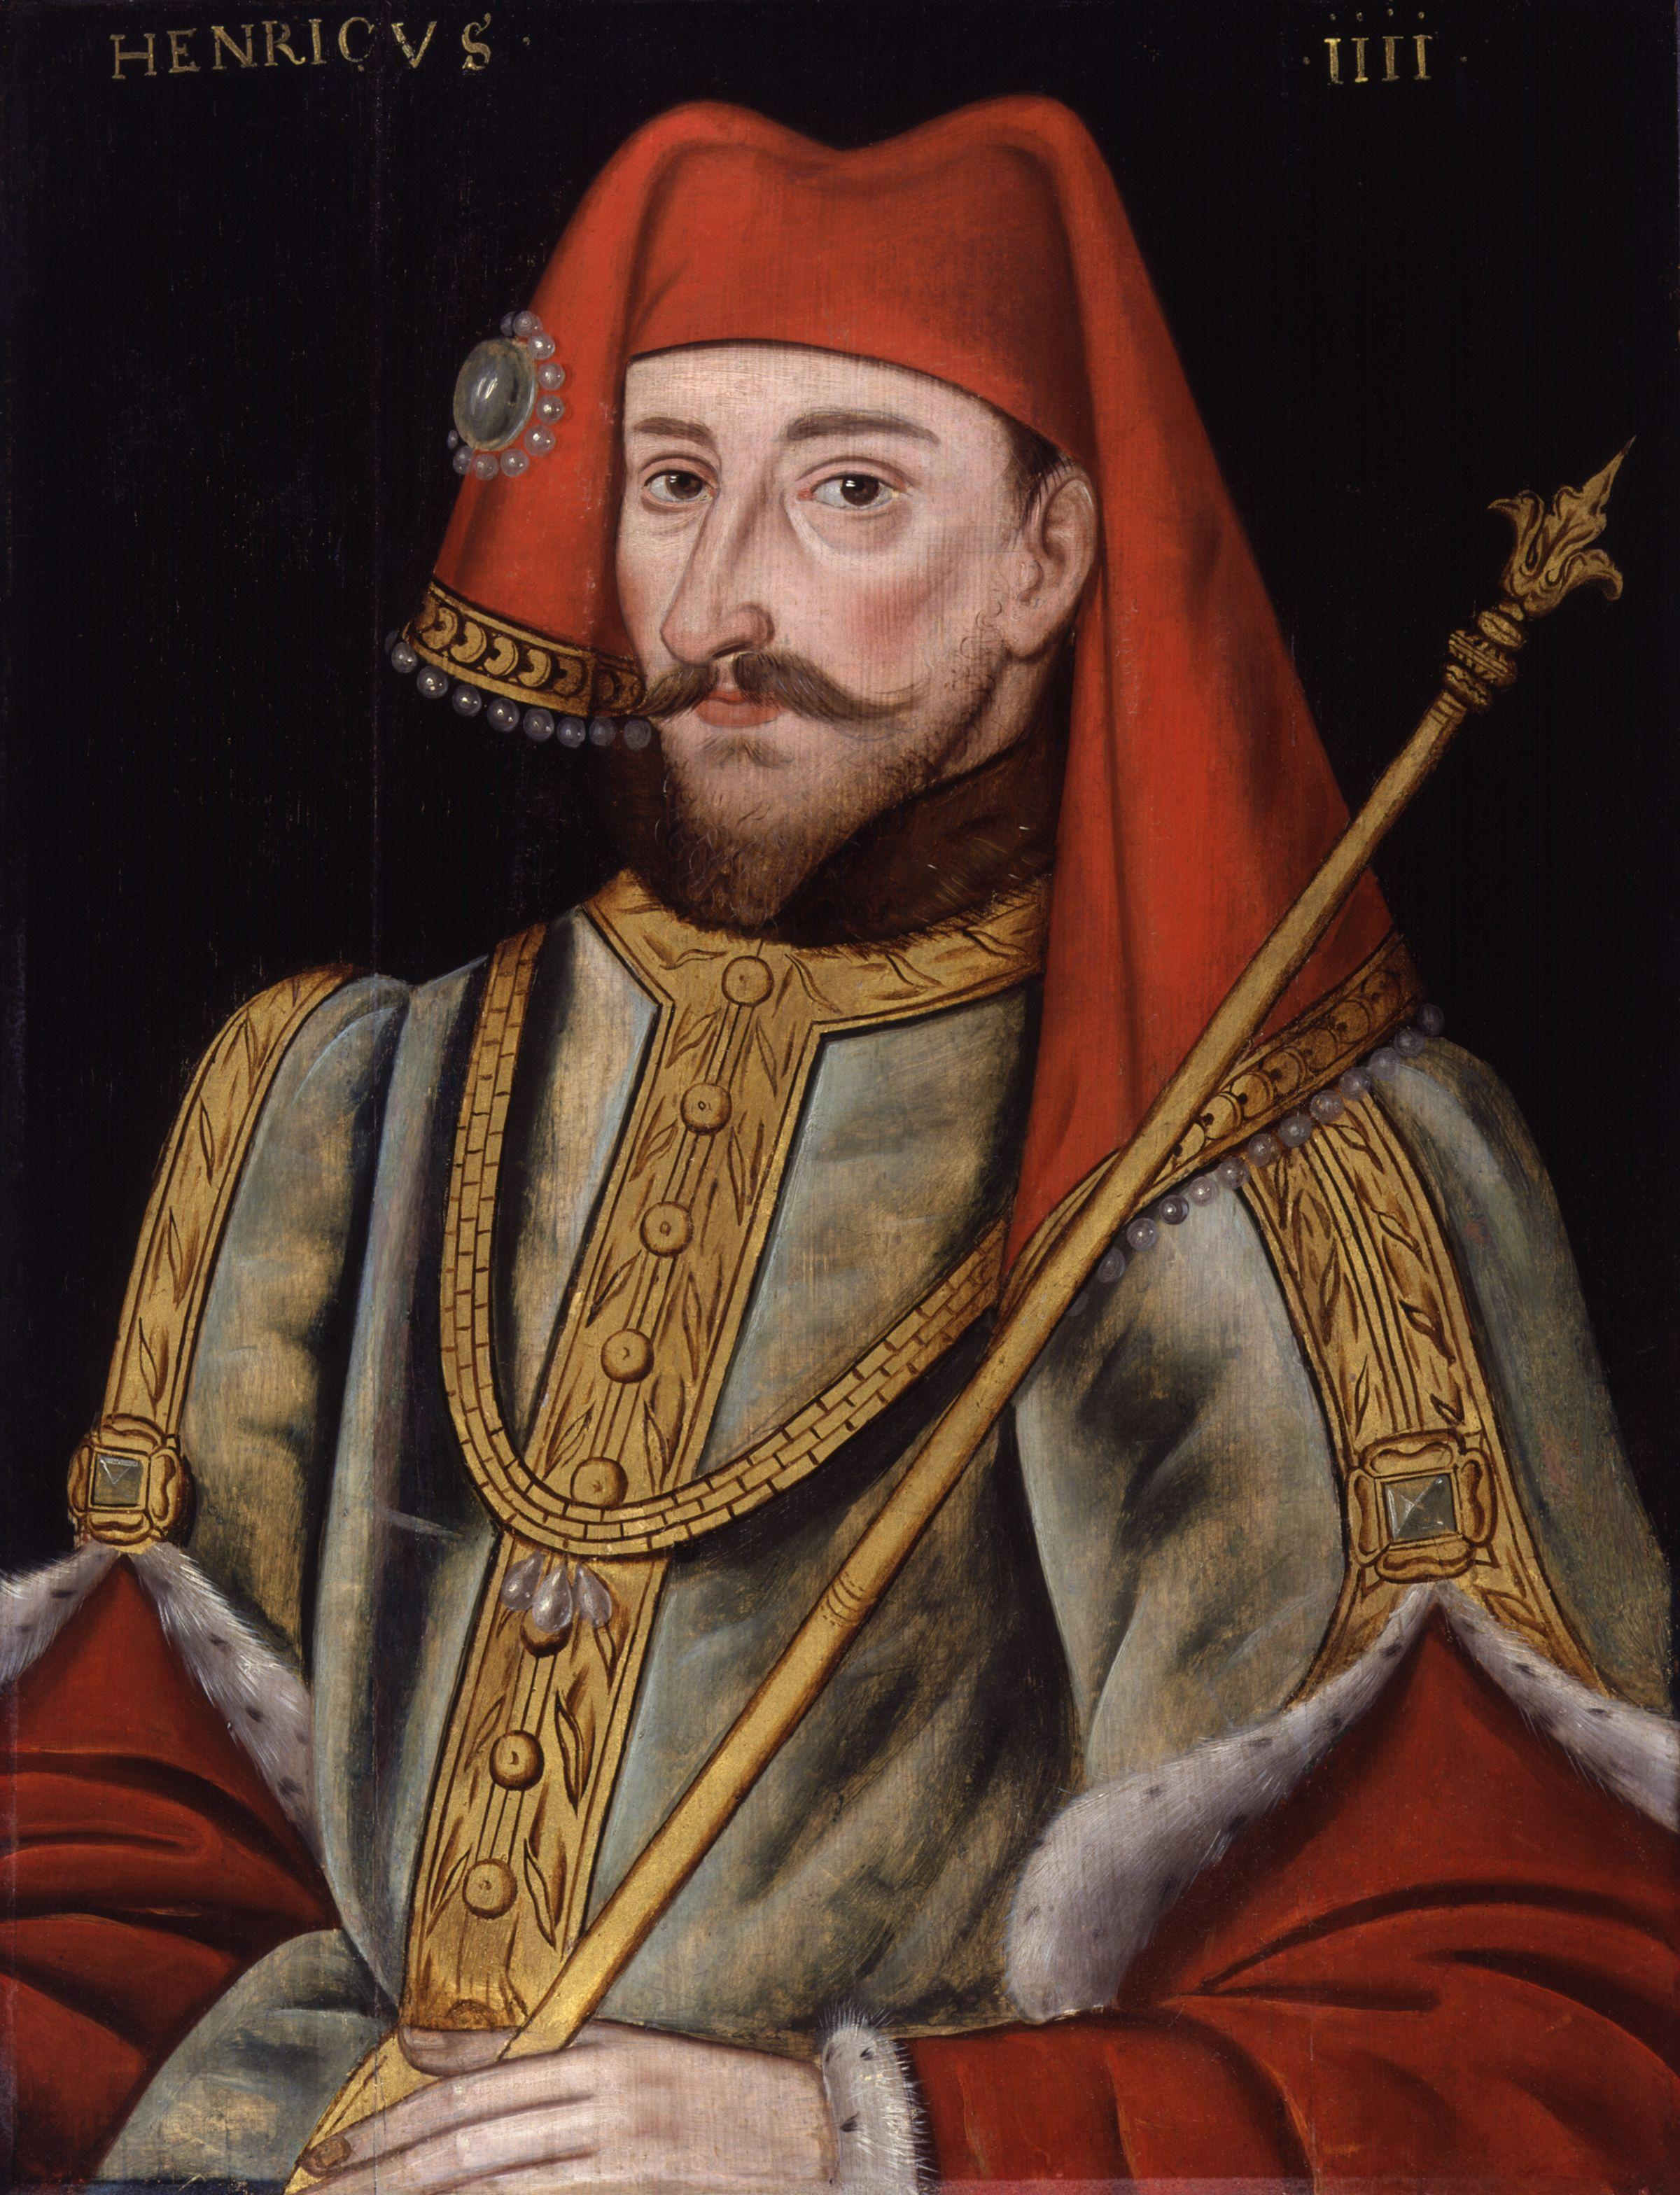 File:King Henry IV from NPG (2).jpg - Wikipedia, the free encyclopedia